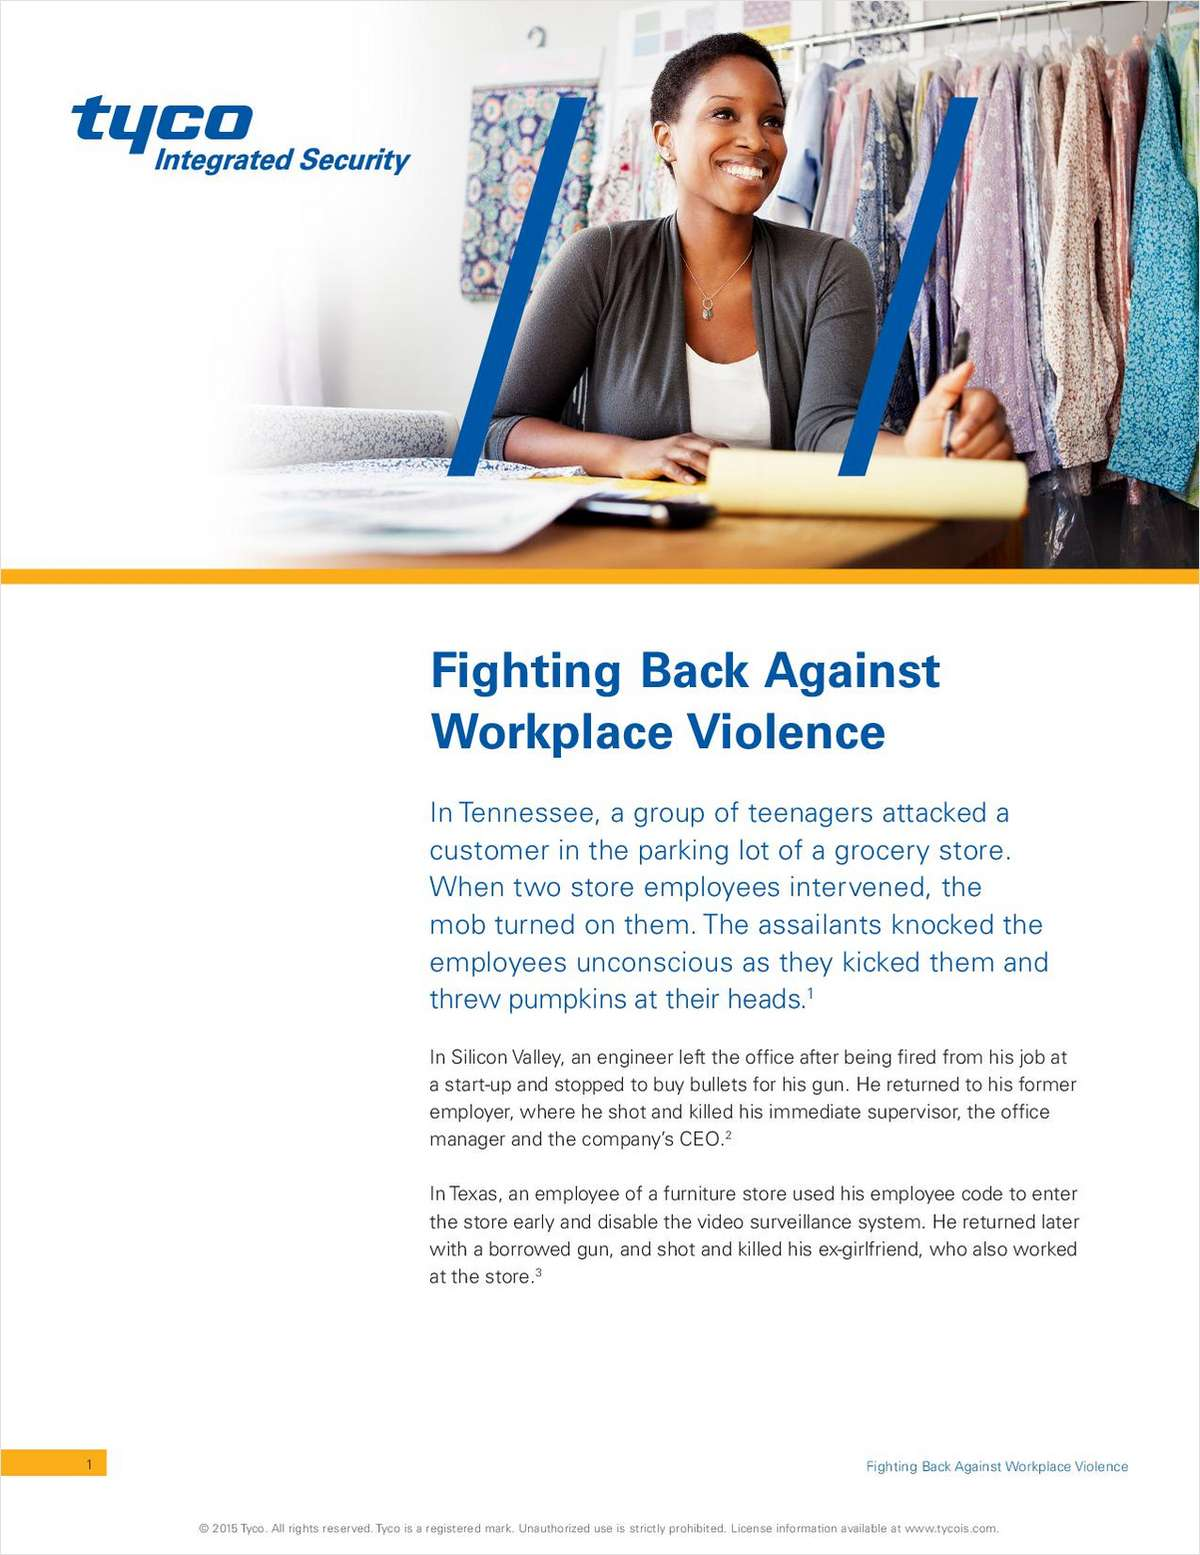 Fighting Back Against Workplace Violence